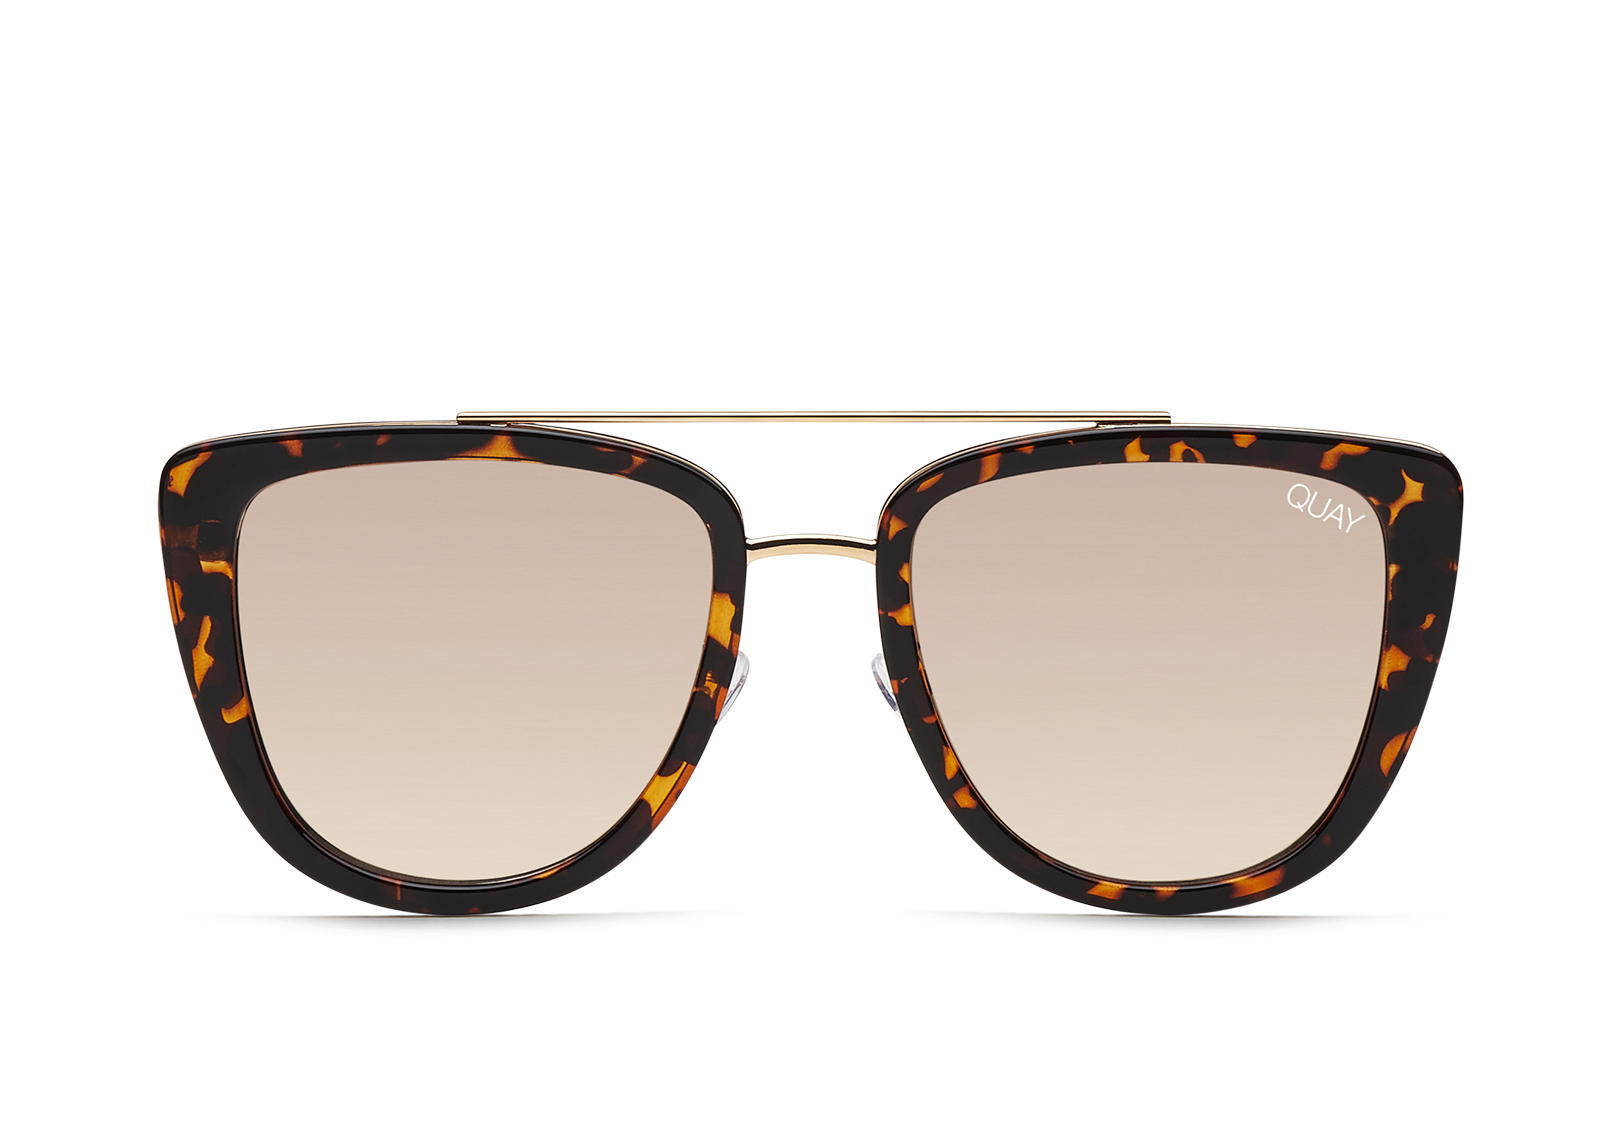 Load image into Gallery viewer, Quay Australia - French Kiss Tortoise Shell/Gold Sunglasses